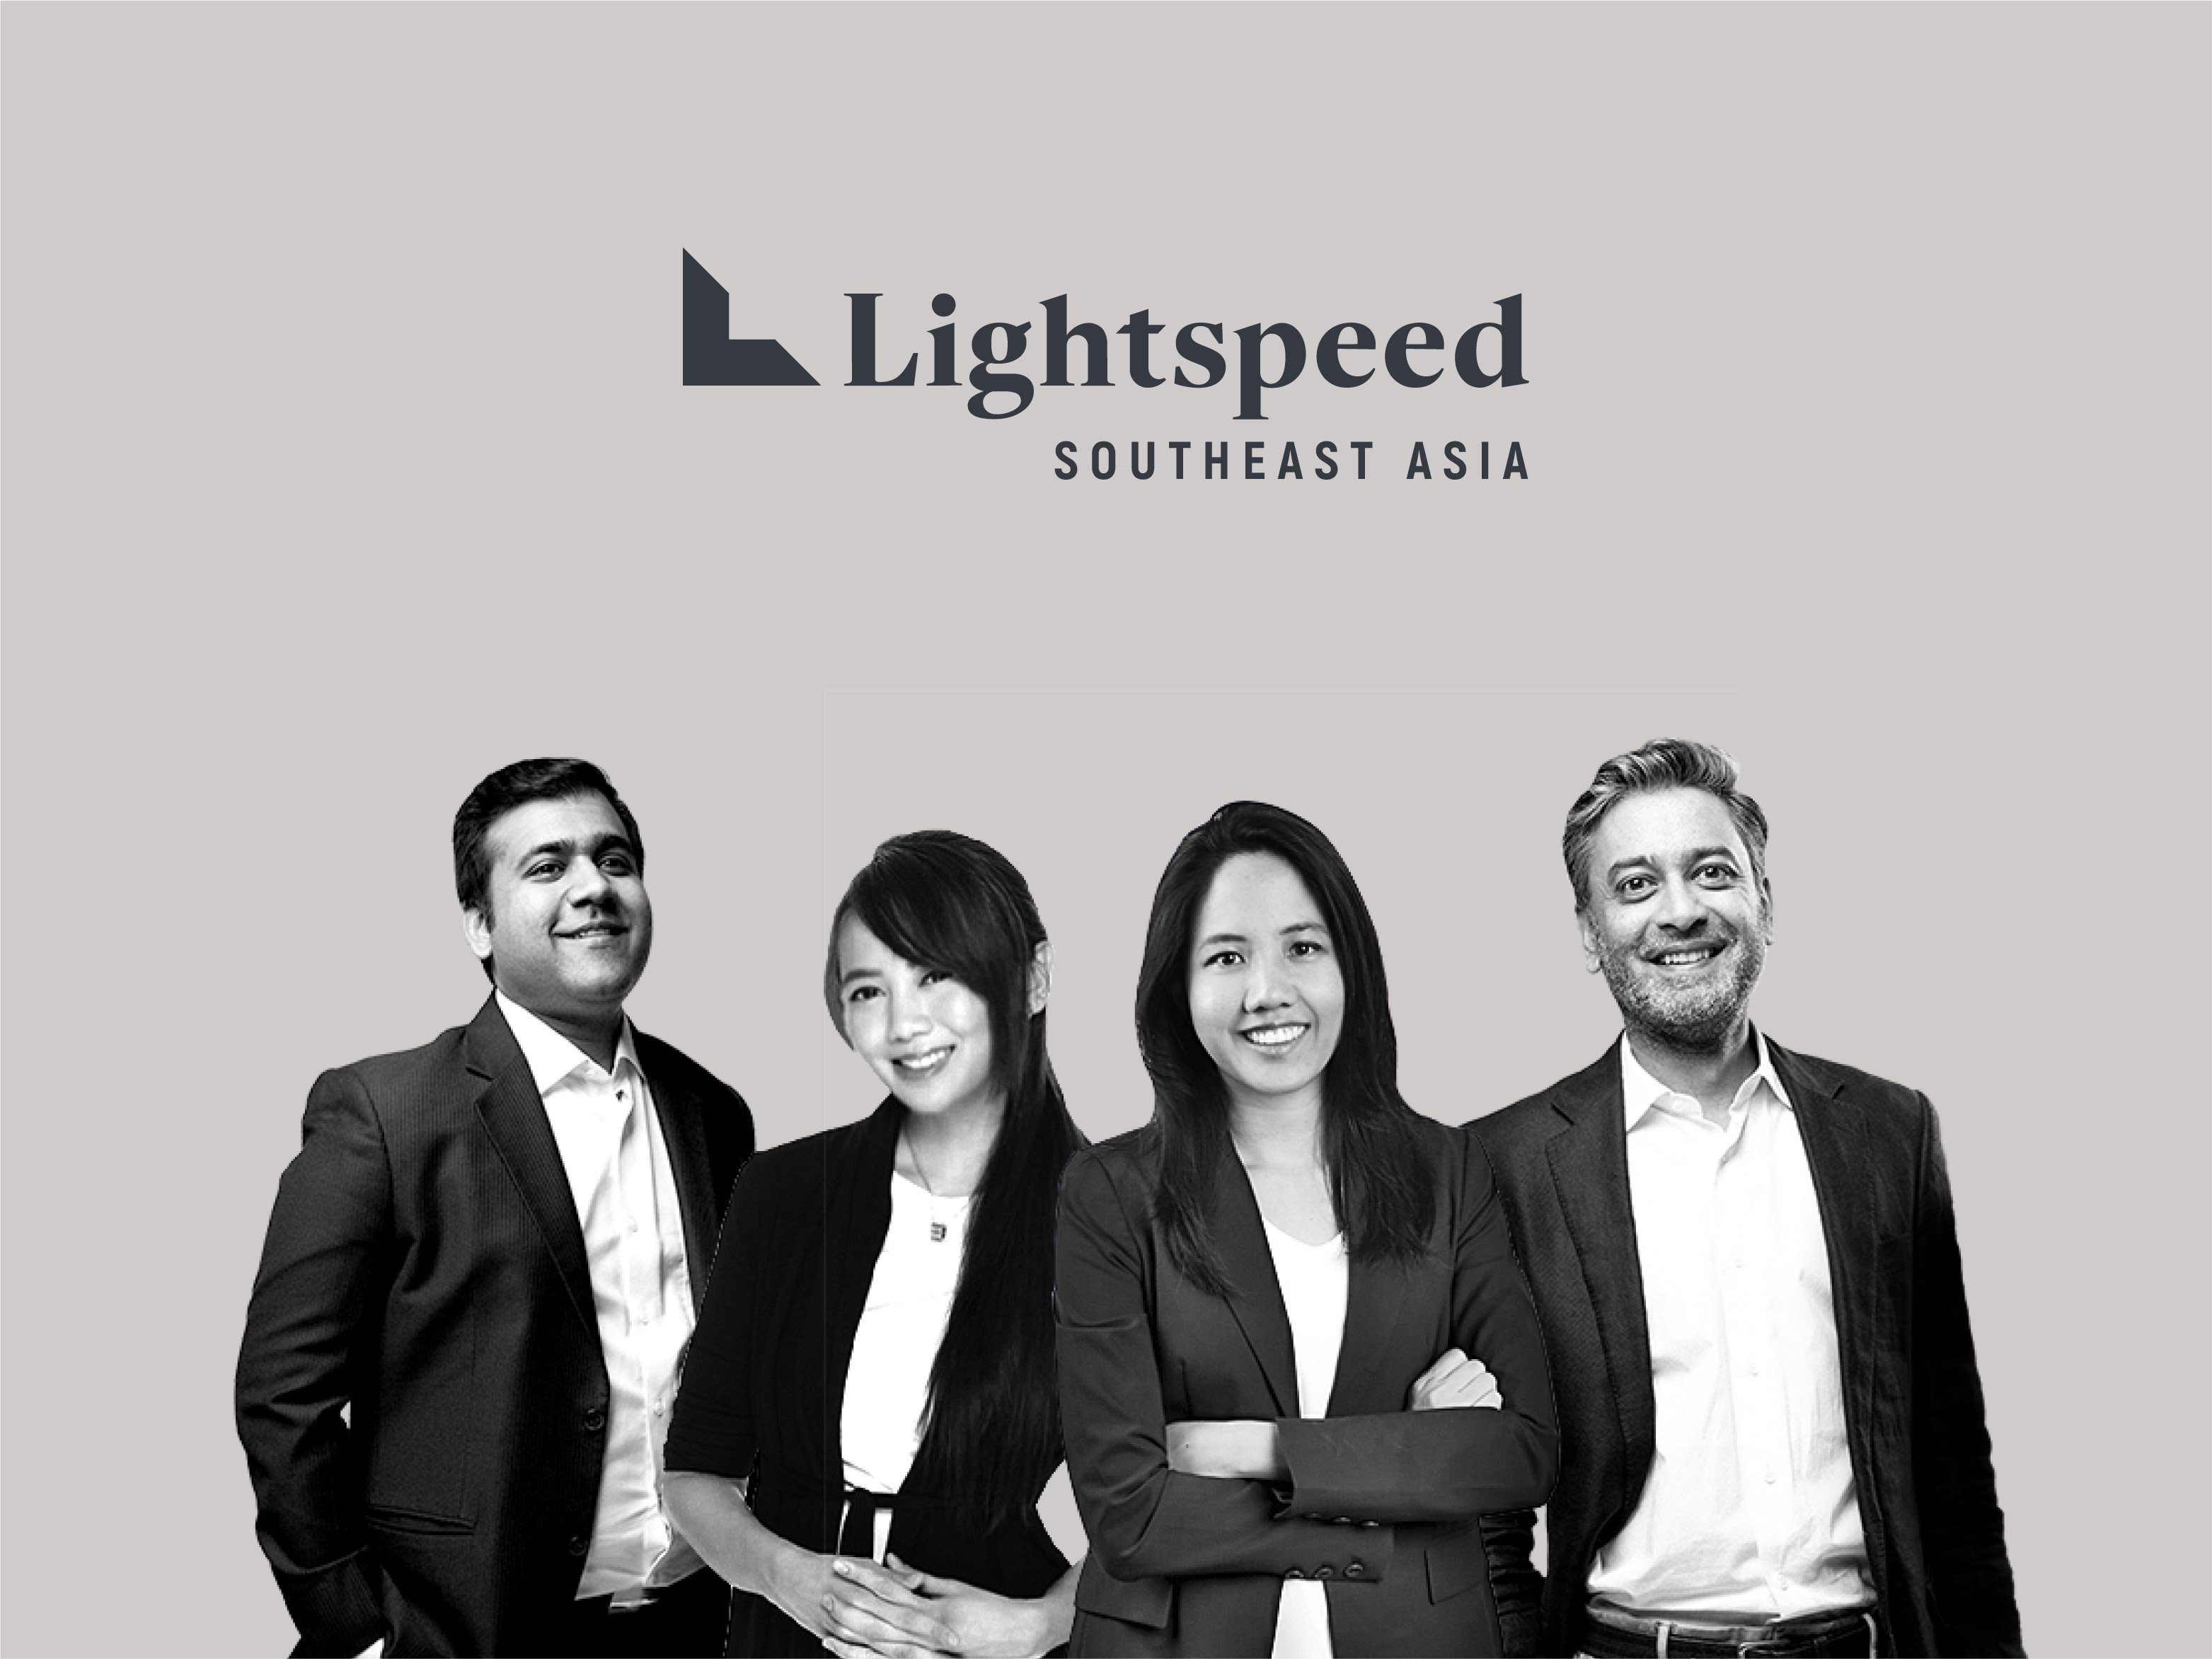 Lightspeed announces the launch of its Southeast Asia operations